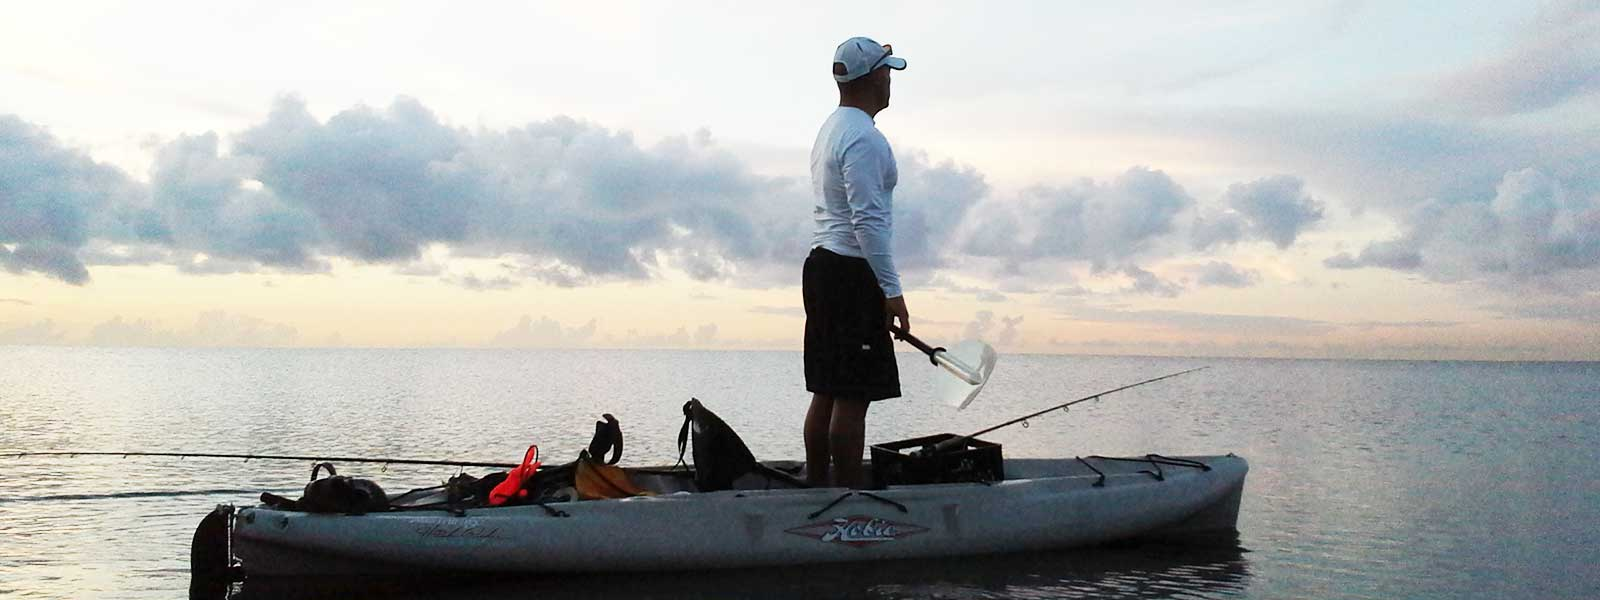 """Returning for his ninth year as Director of Key Biscayne Aquatic Camp, also known as """"Coach"""", David loves all things water, He is currently employed as a middle school P. E. teacher at Key Biscayne K-8 center. Each summer he looks forward to sharing his love of the ocean with campers and staff."""